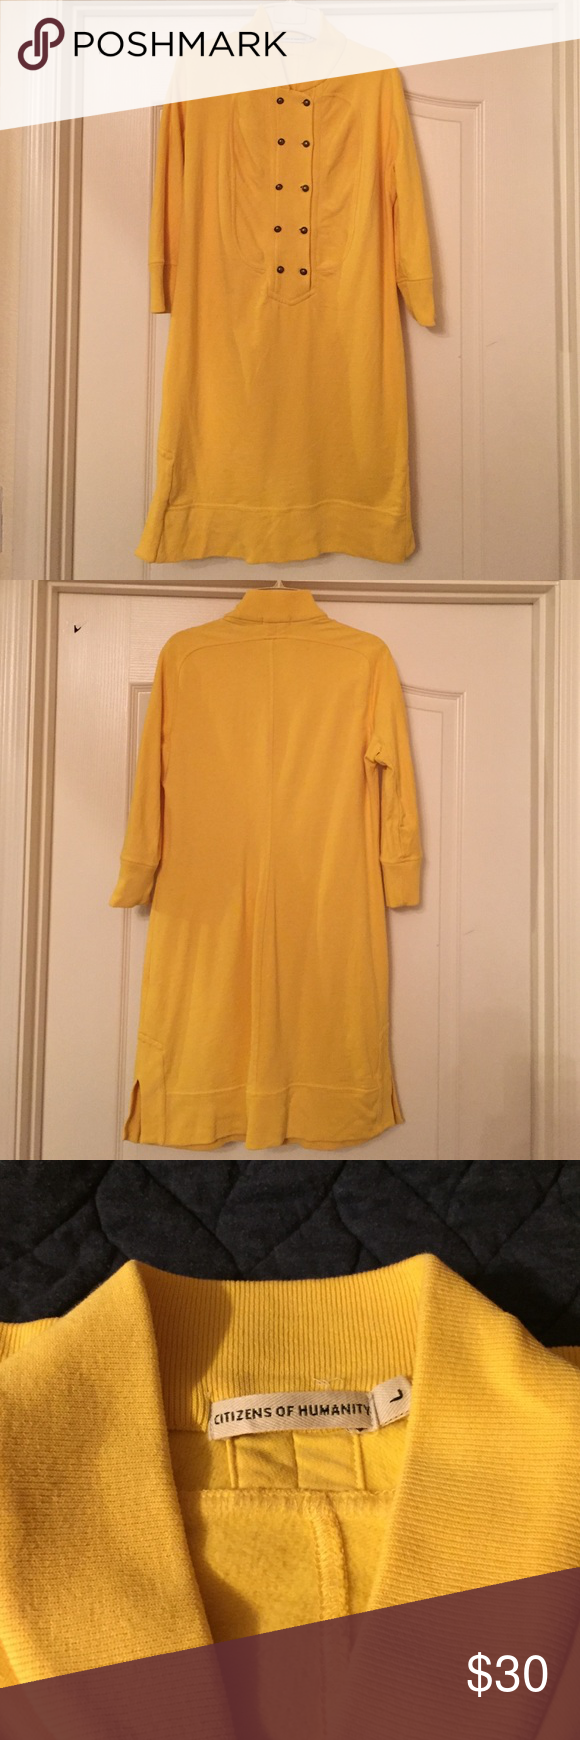 Citizens of Humanity yellow tunic sweater Citizens of Humanity ...